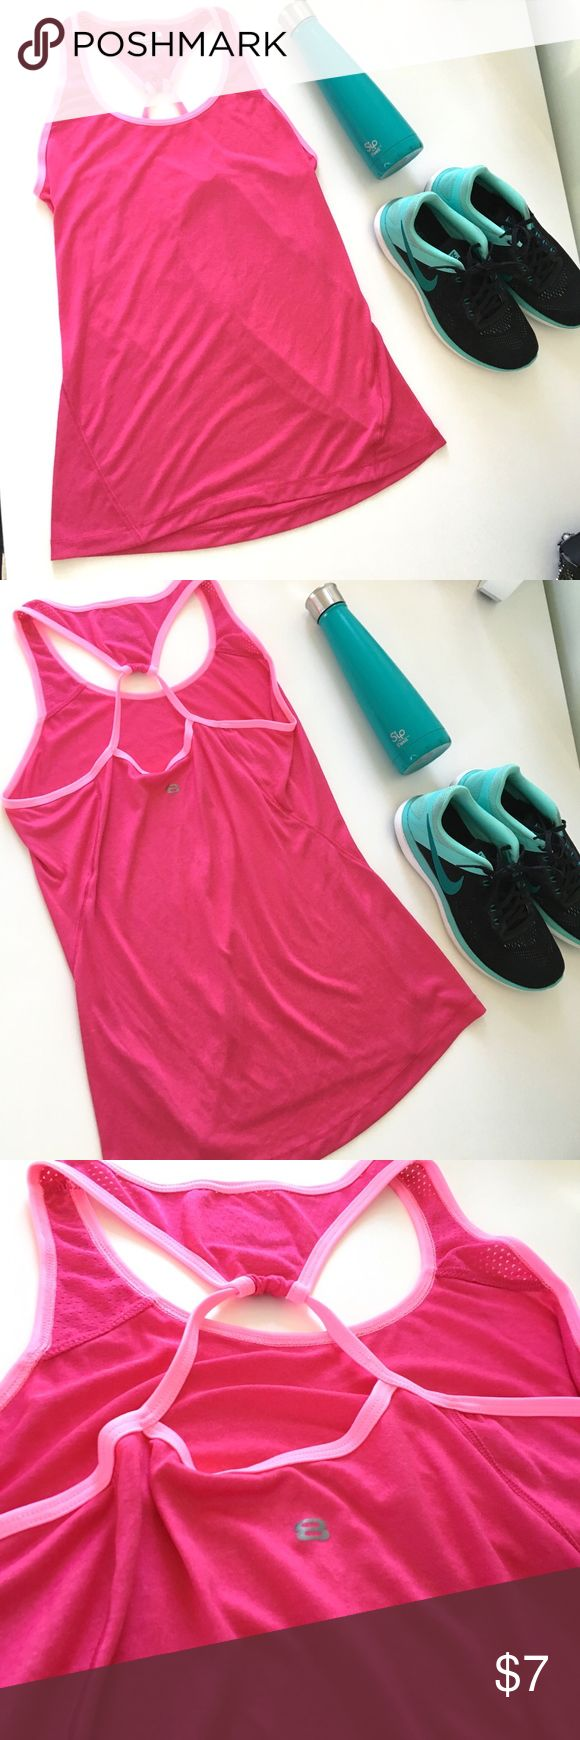 Hot Pink Strappy Workout Tank This hot pink workout tank features light pink contrast piping and a cute strappy back that shows off your sports bra! Worn and laundered once, and in excellent condition. Bundle with my other workout items to save on your next gym outfit! Hope you love your new tank! Layer 8 Performance Tops Tank Tops